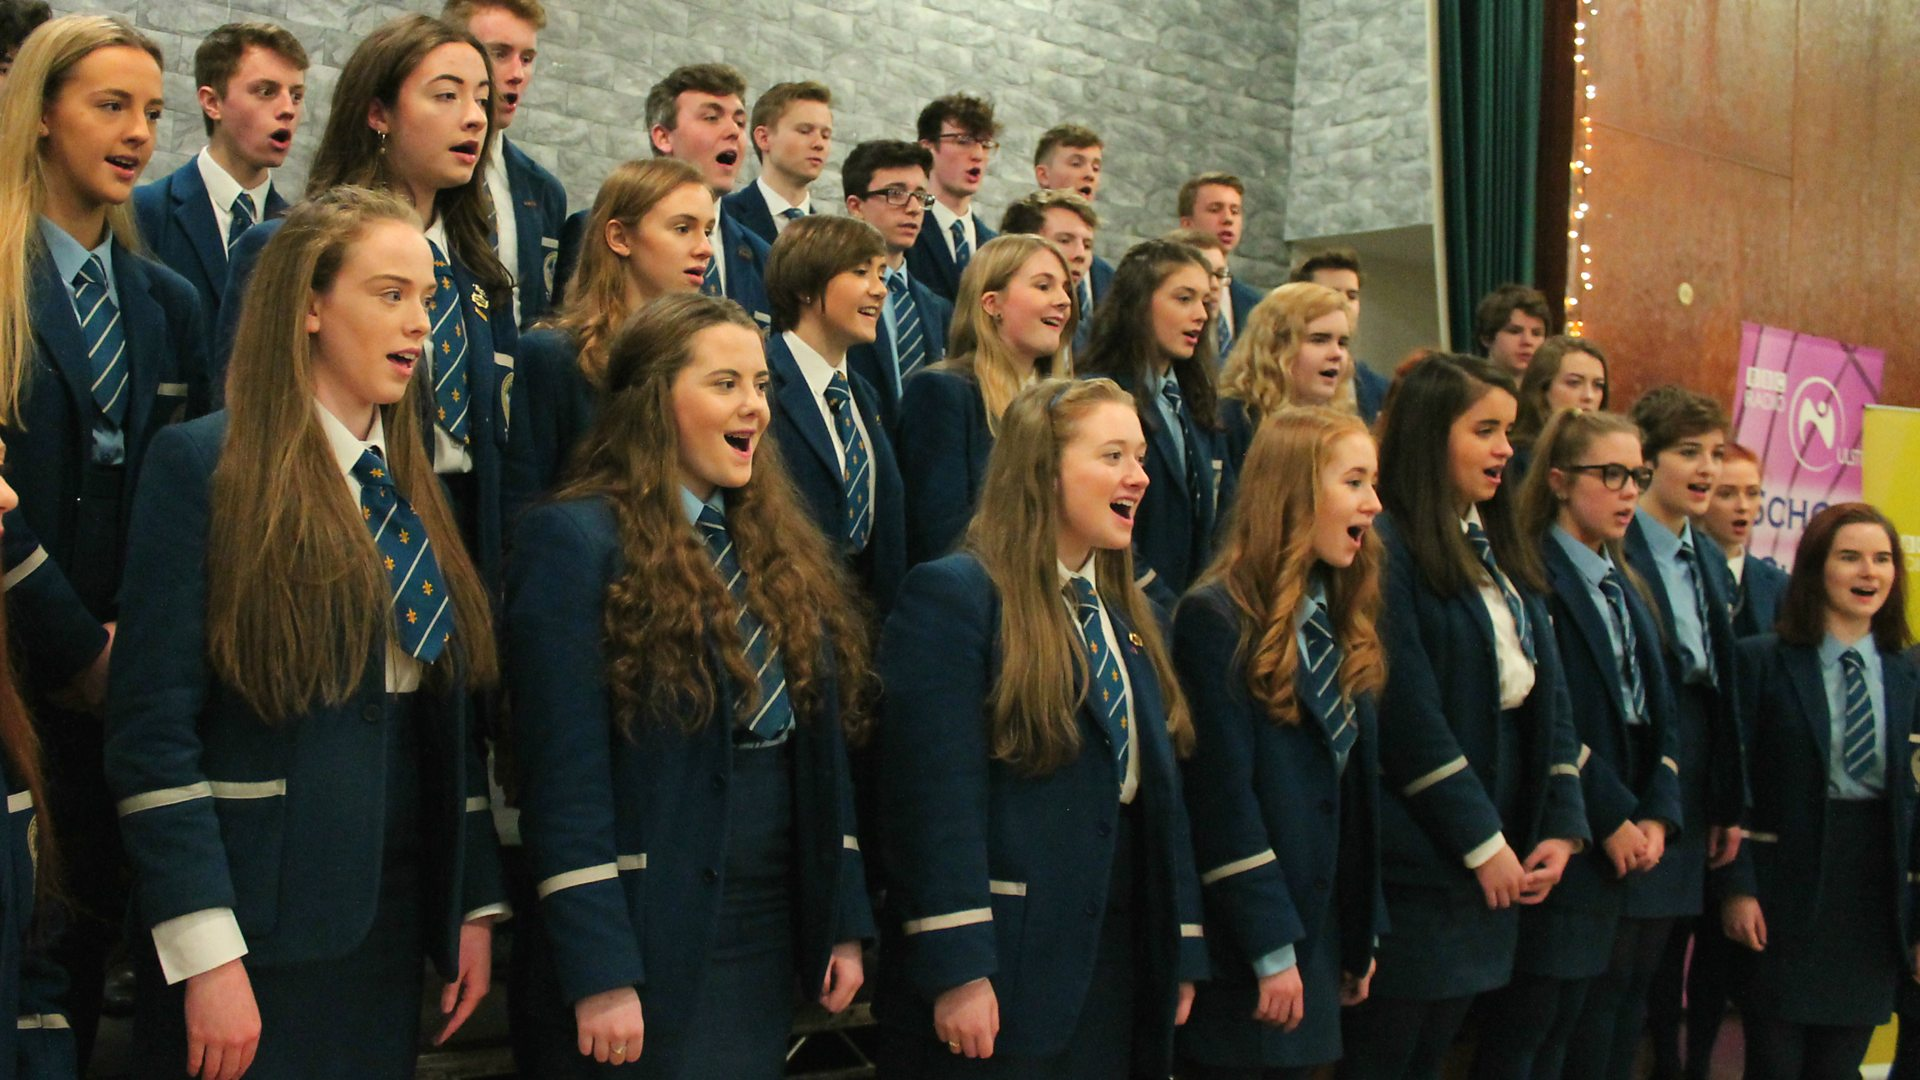 5 Tips for Getting the Most Out of Your Choir Experience